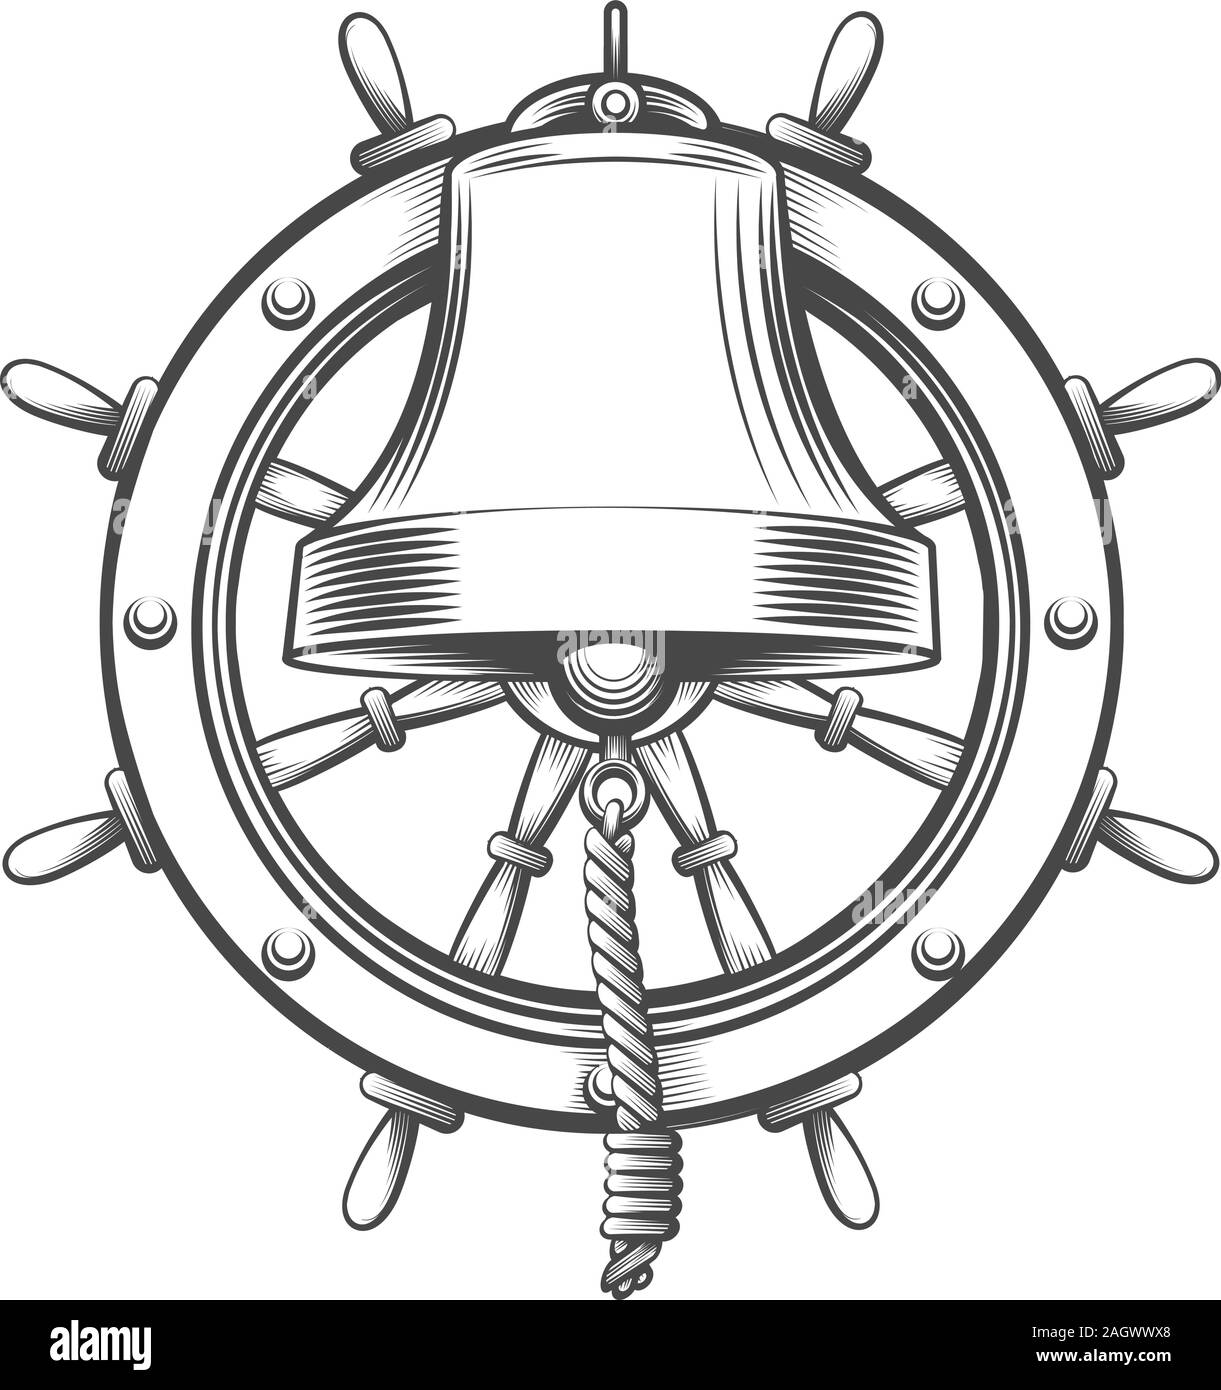 Nautical Emblem With Ship Bell And Steering Wheel In Engraving Style Vector Illustration Stock Vector Image Art Alamy